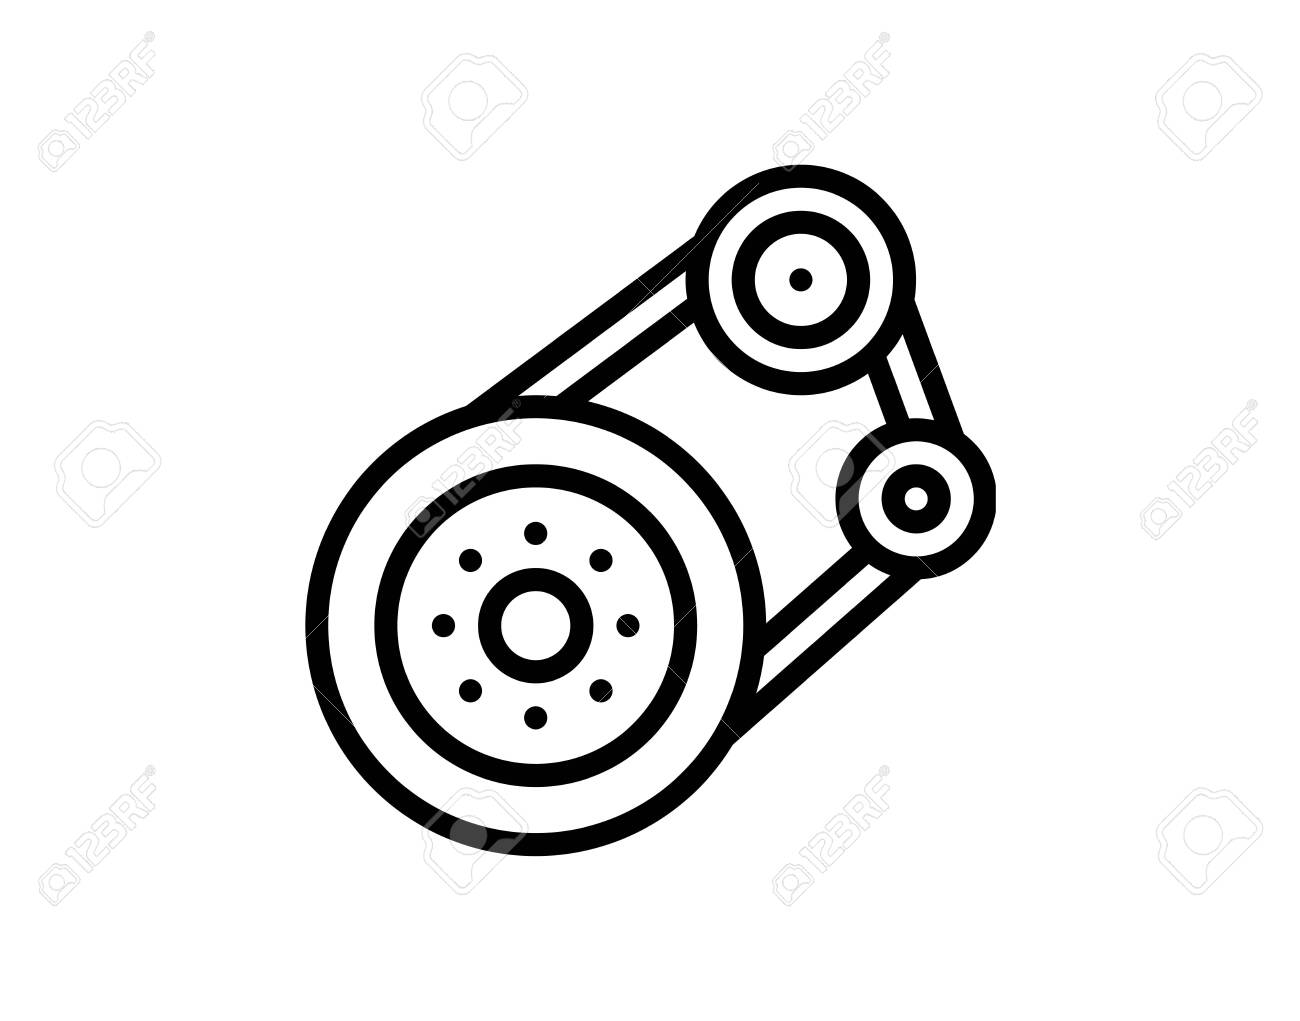 Linear Car Transmission Icon From Car Parts Outline Collection Royalty Free Cliparts Vectors And Stock Illustration Image 140107001